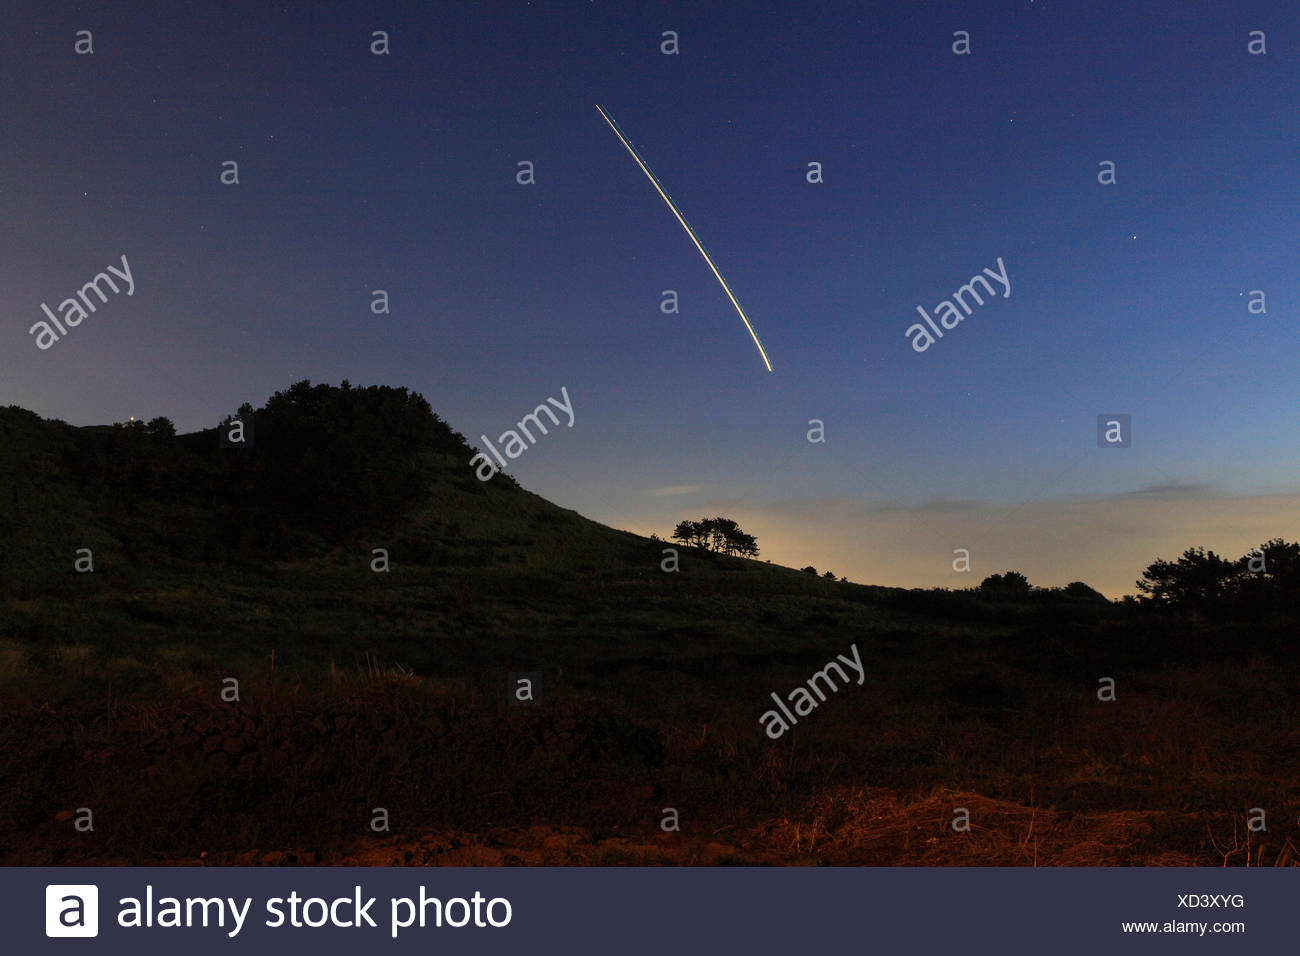 Shooting Star - Stock Image